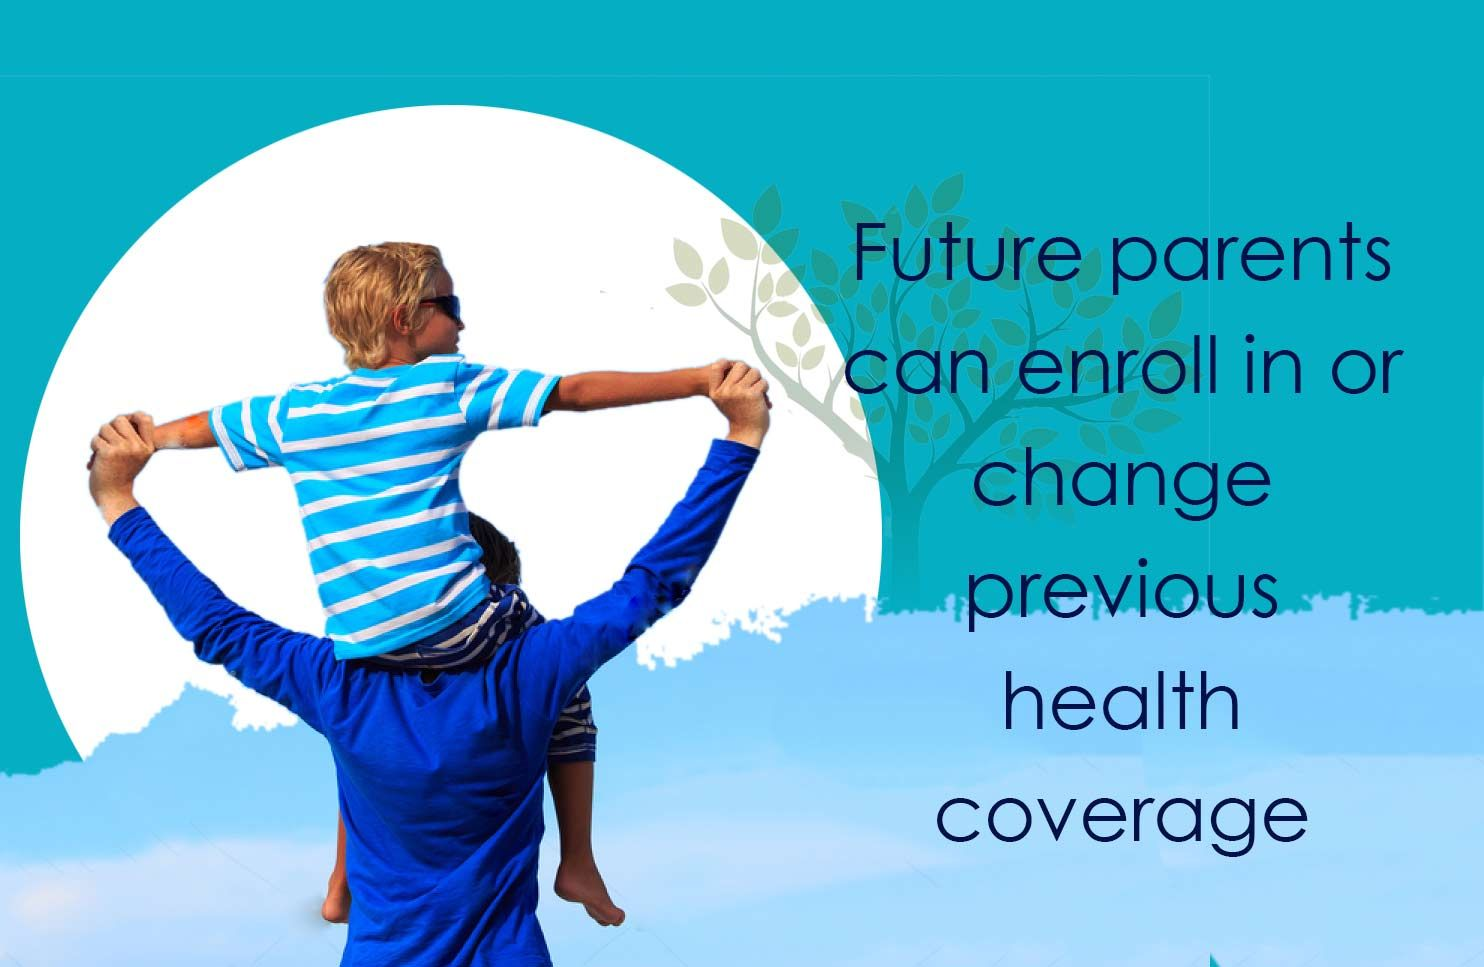 Special Enrollment Plans provide opportunities to the new